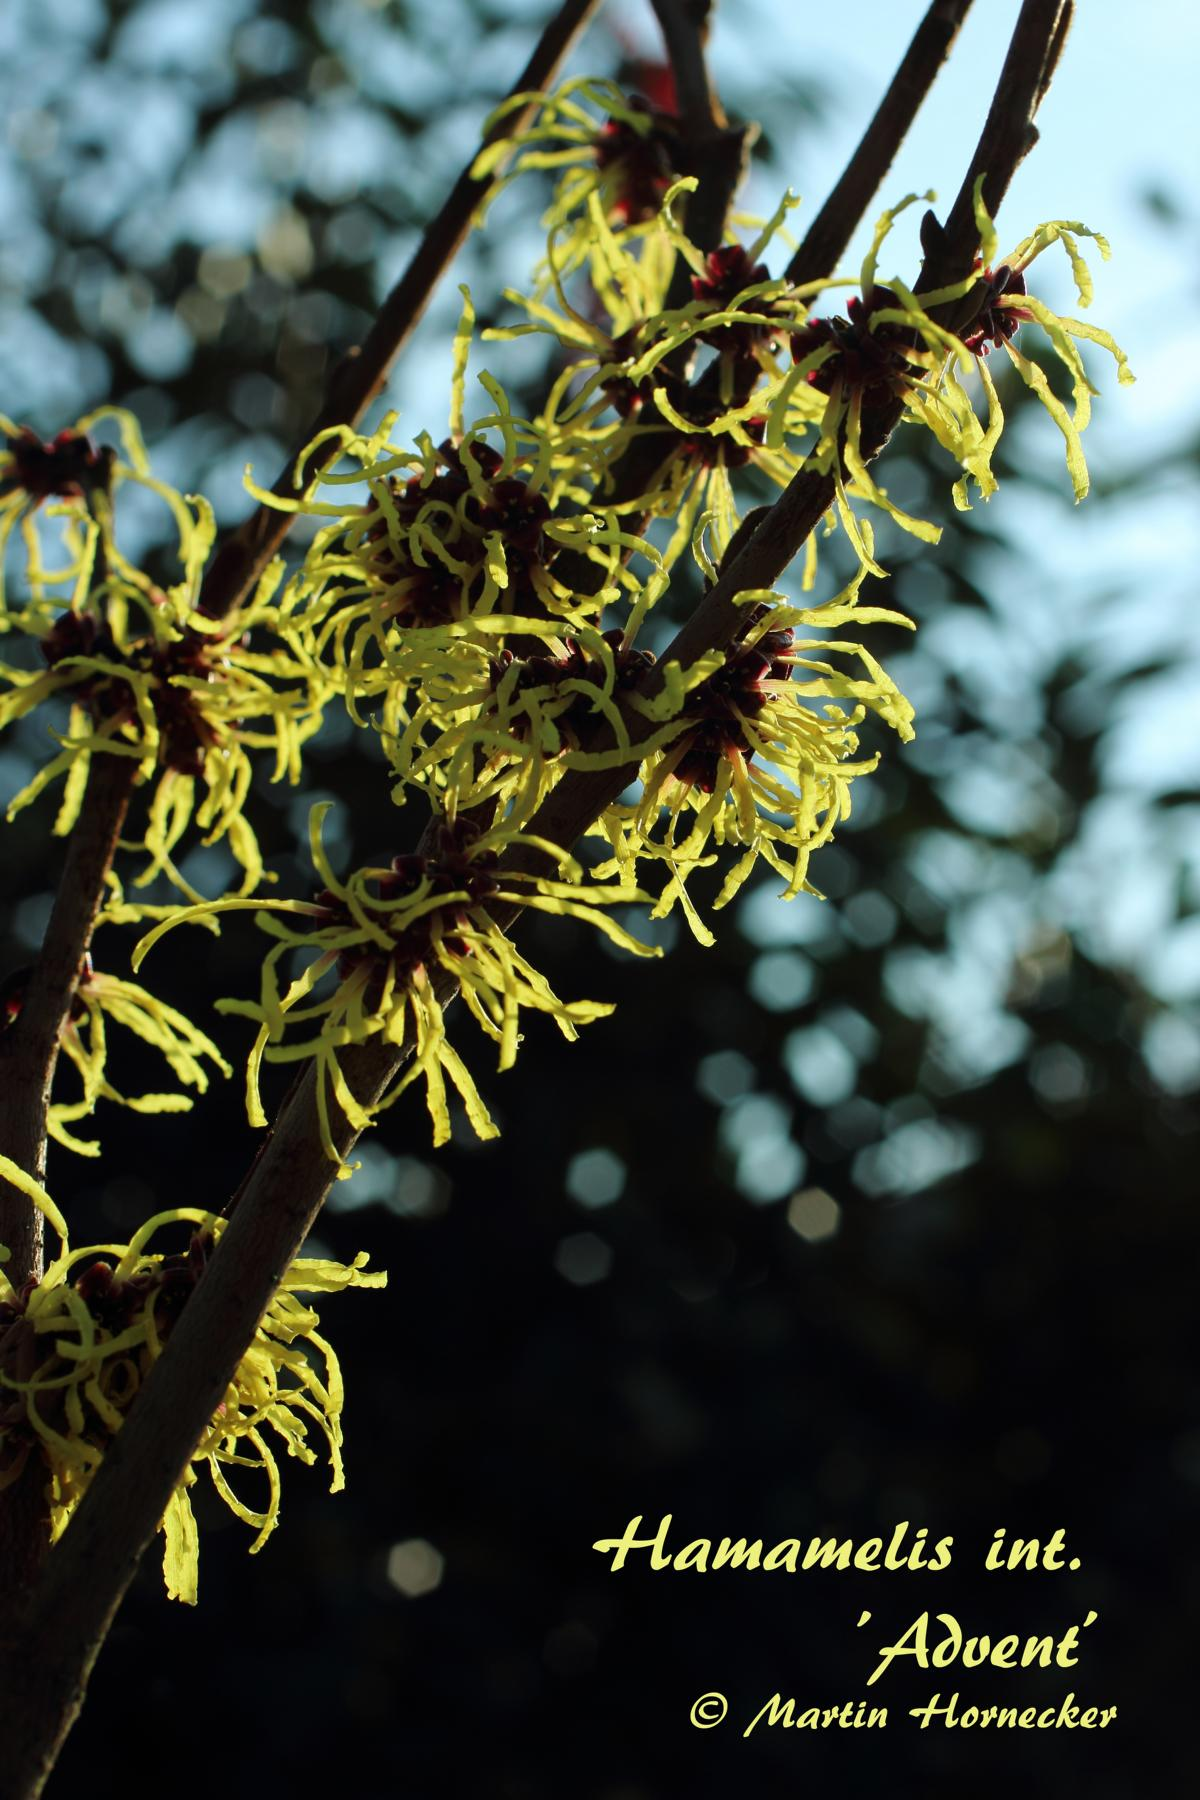 Hamamelis Advent